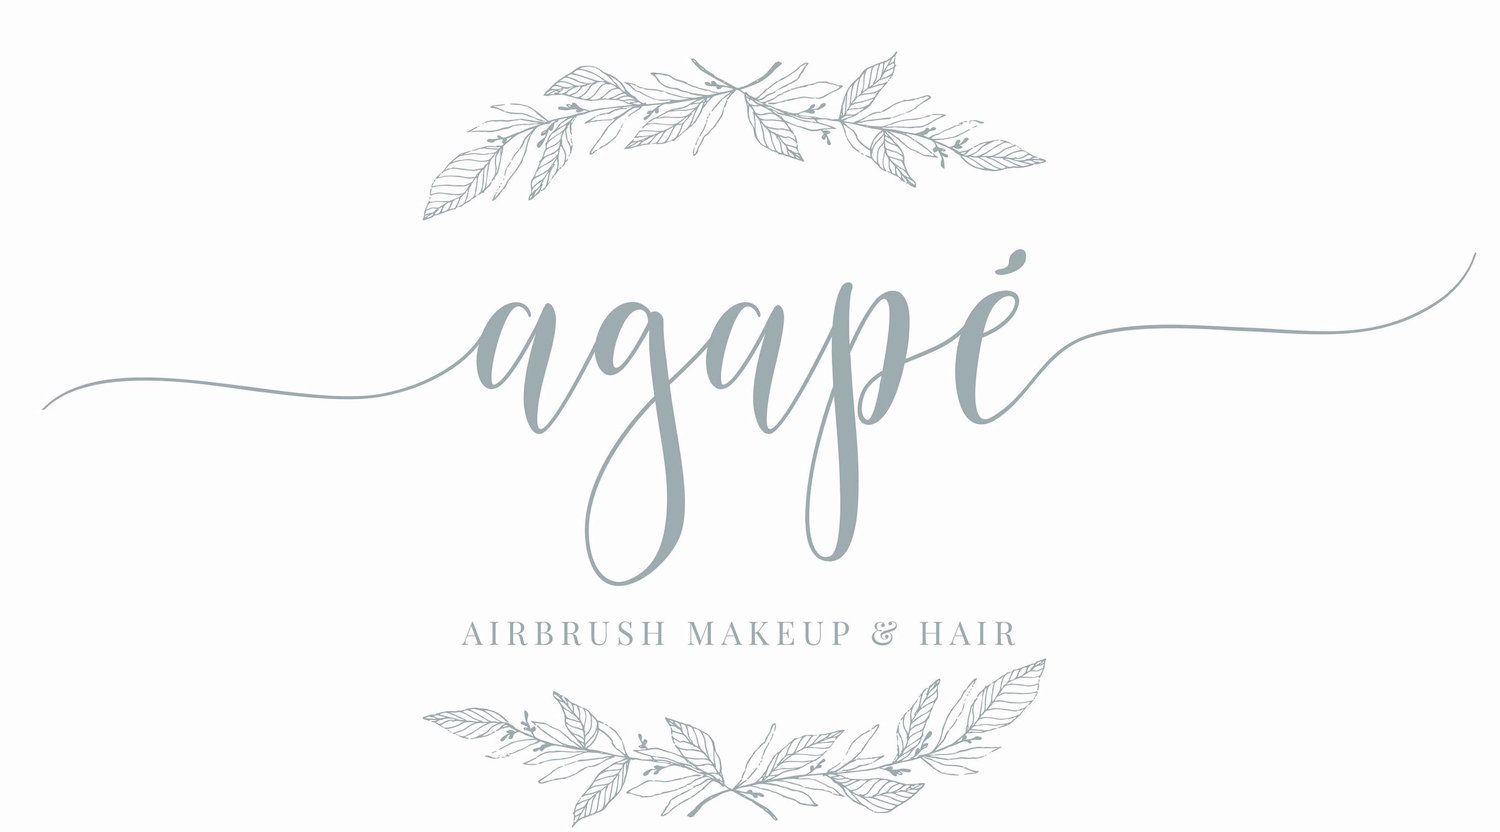 Bridal Makeup And Hair Northern Virginia | Airbrush Makeup Artist DC Metro Area